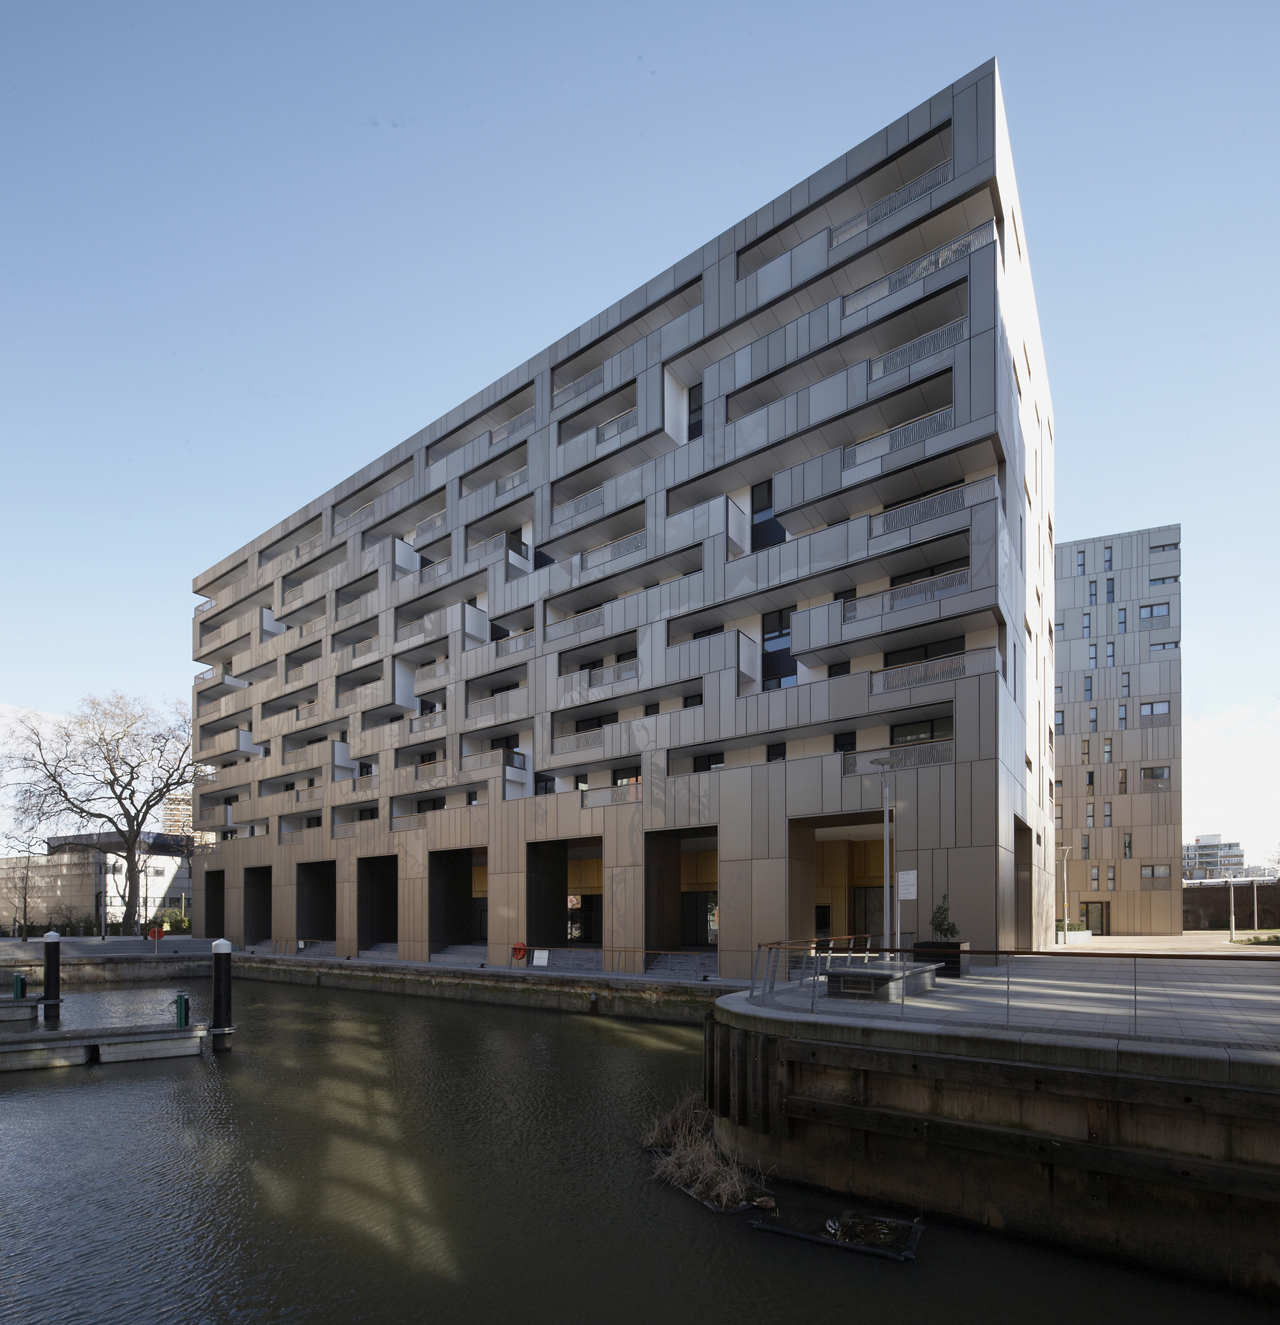 Grosvenor Waterside / Make Architects, © Zander Olsen